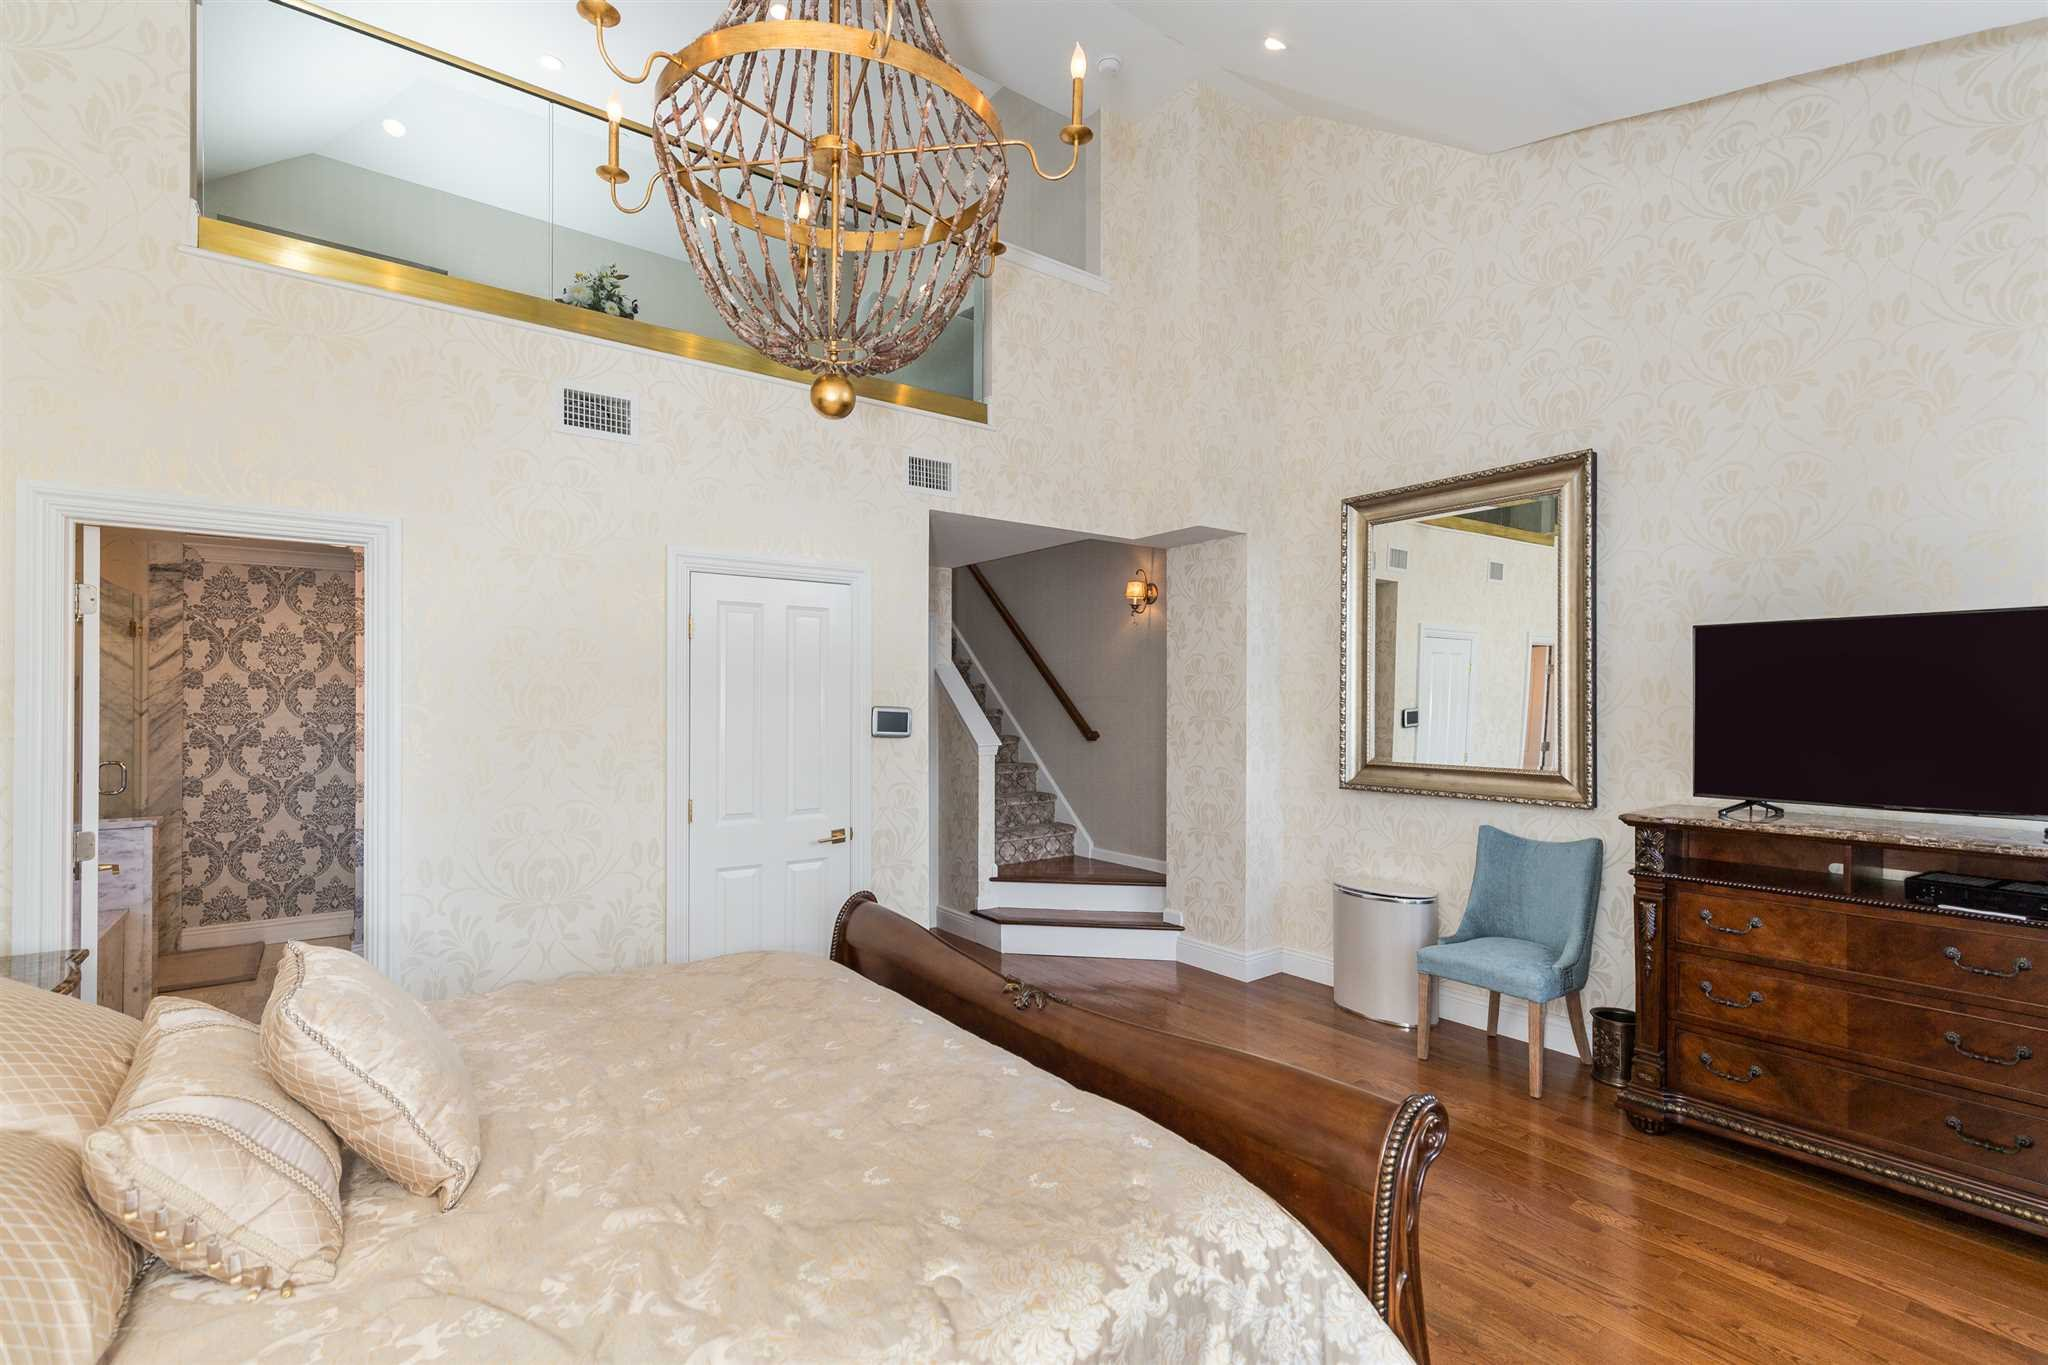 Additional photo for property listing at 122 HUDSON POINTE Drive 122 HUDSON POINTE Drive Poughkeepsie, New York 12601 United States